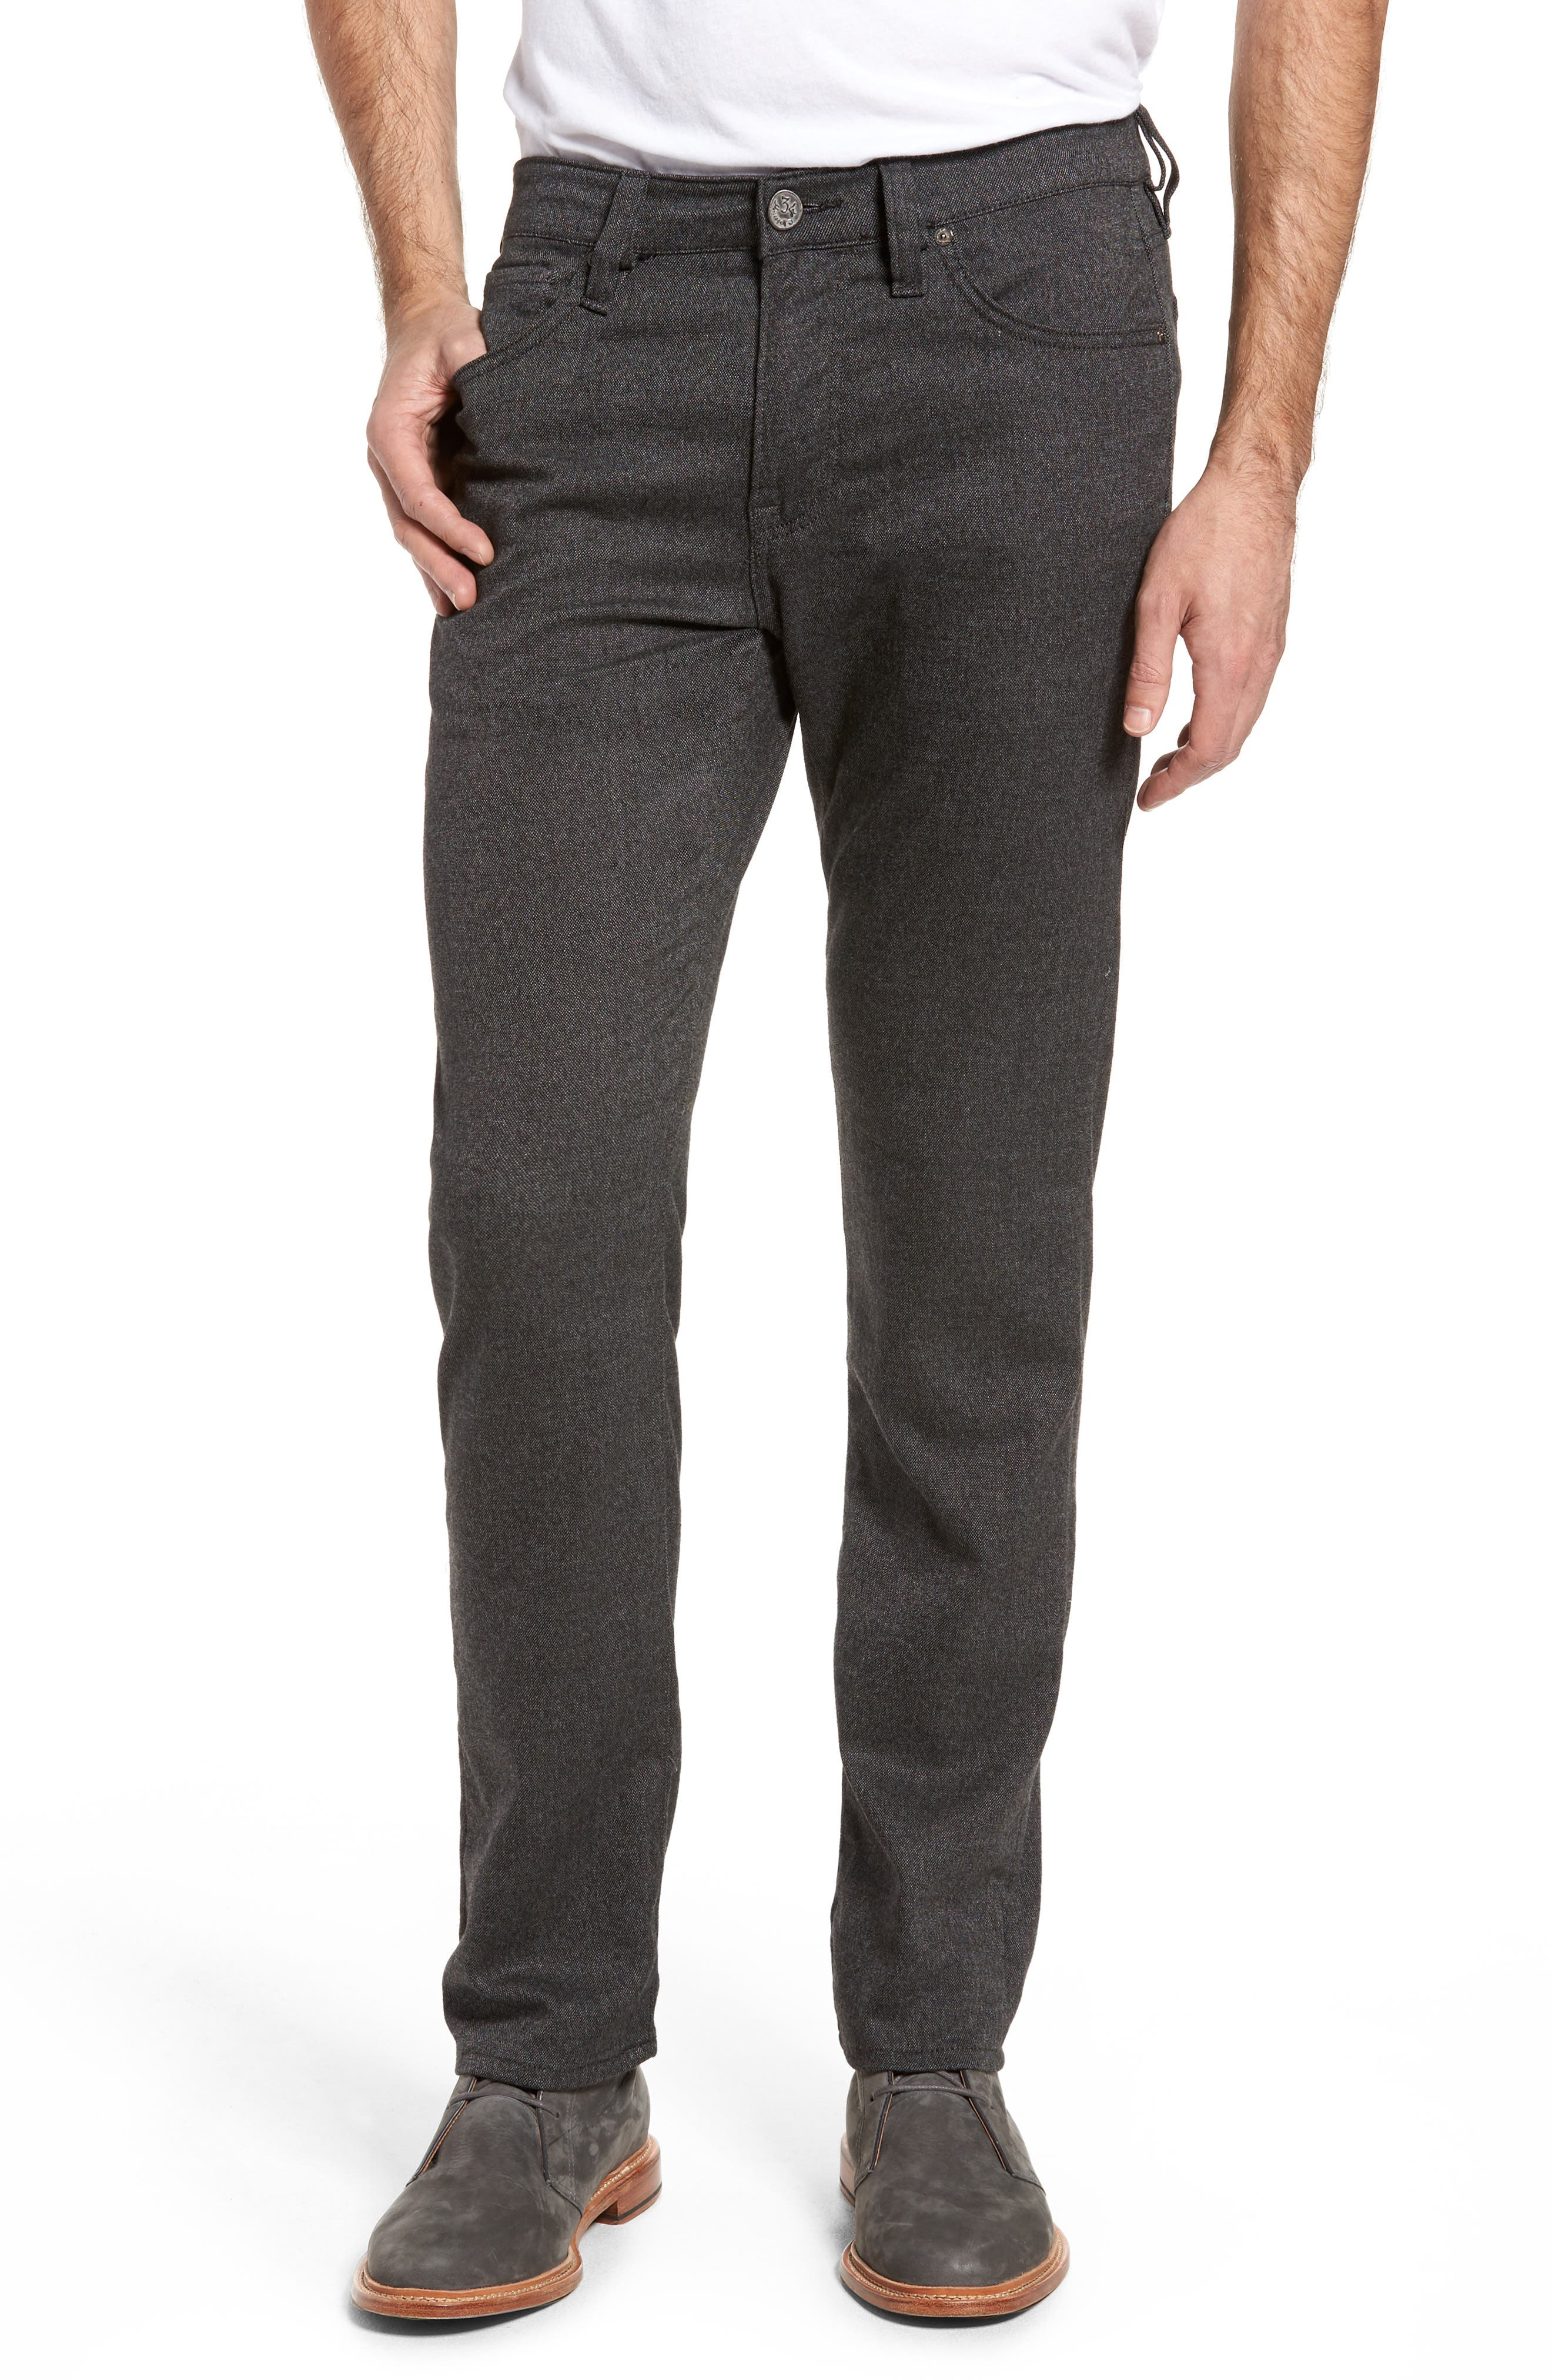 Courage Straight Leg Tweed Pants,                             Main thumbnail 1, color,                             Grey Feather Tweed